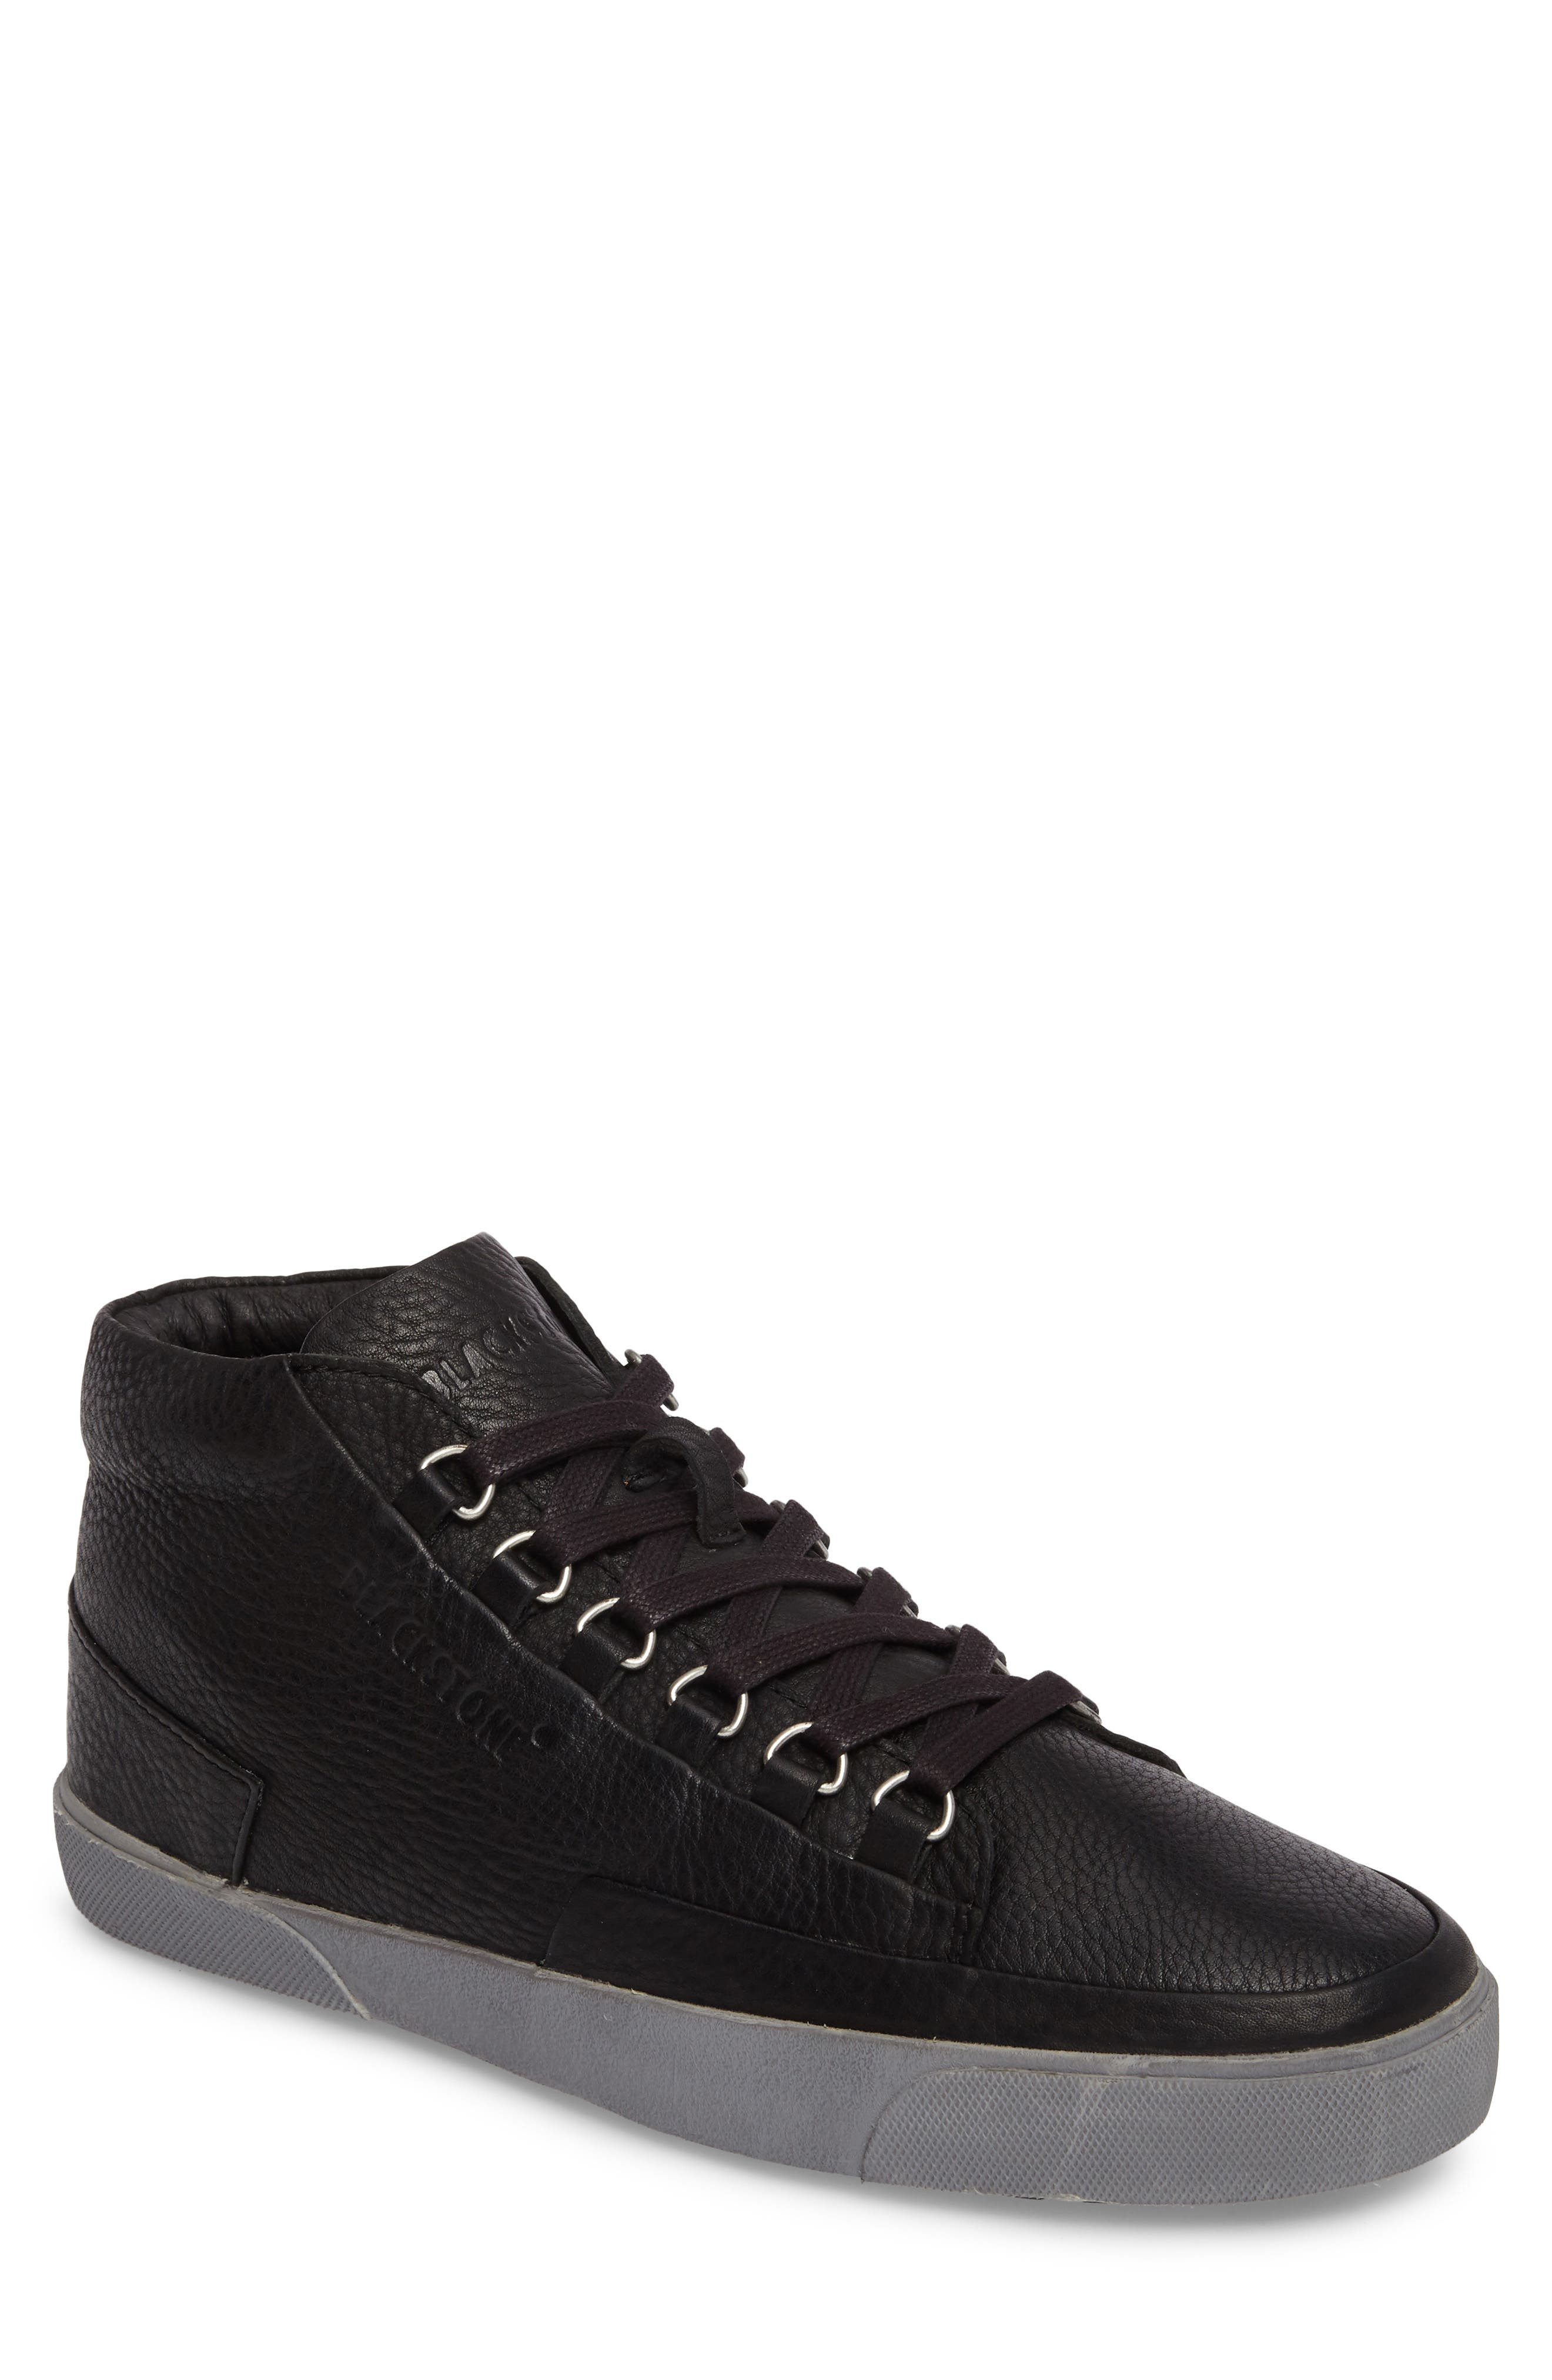 KM 02 Sneaker with Genuine Shearling Lining,                         Main,                         color, 001